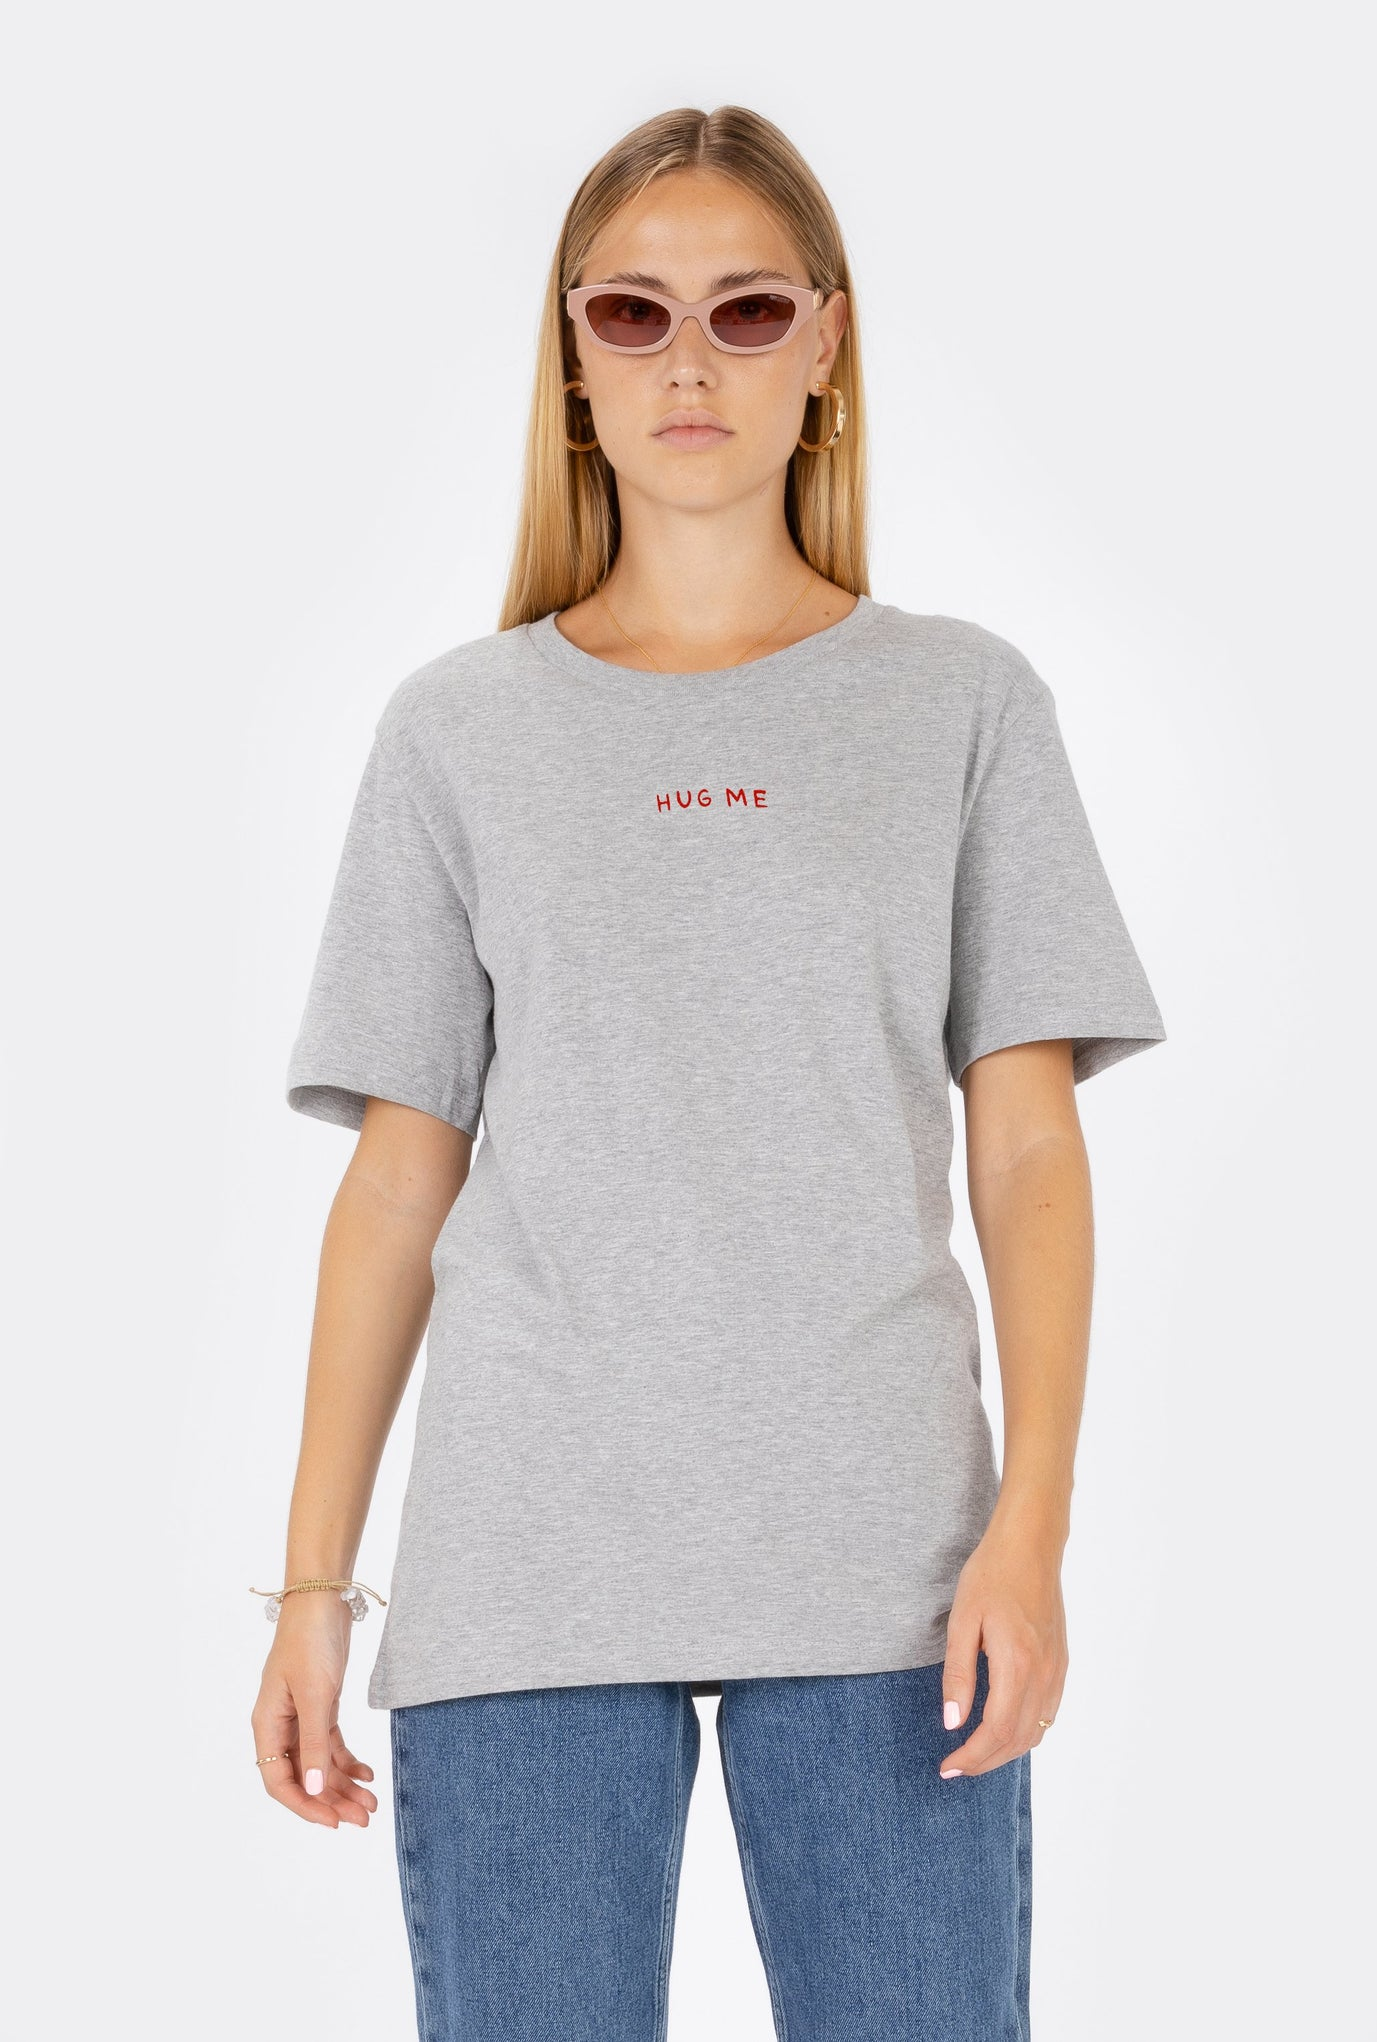 T-Shirt S/S Hug Me - Embroidered